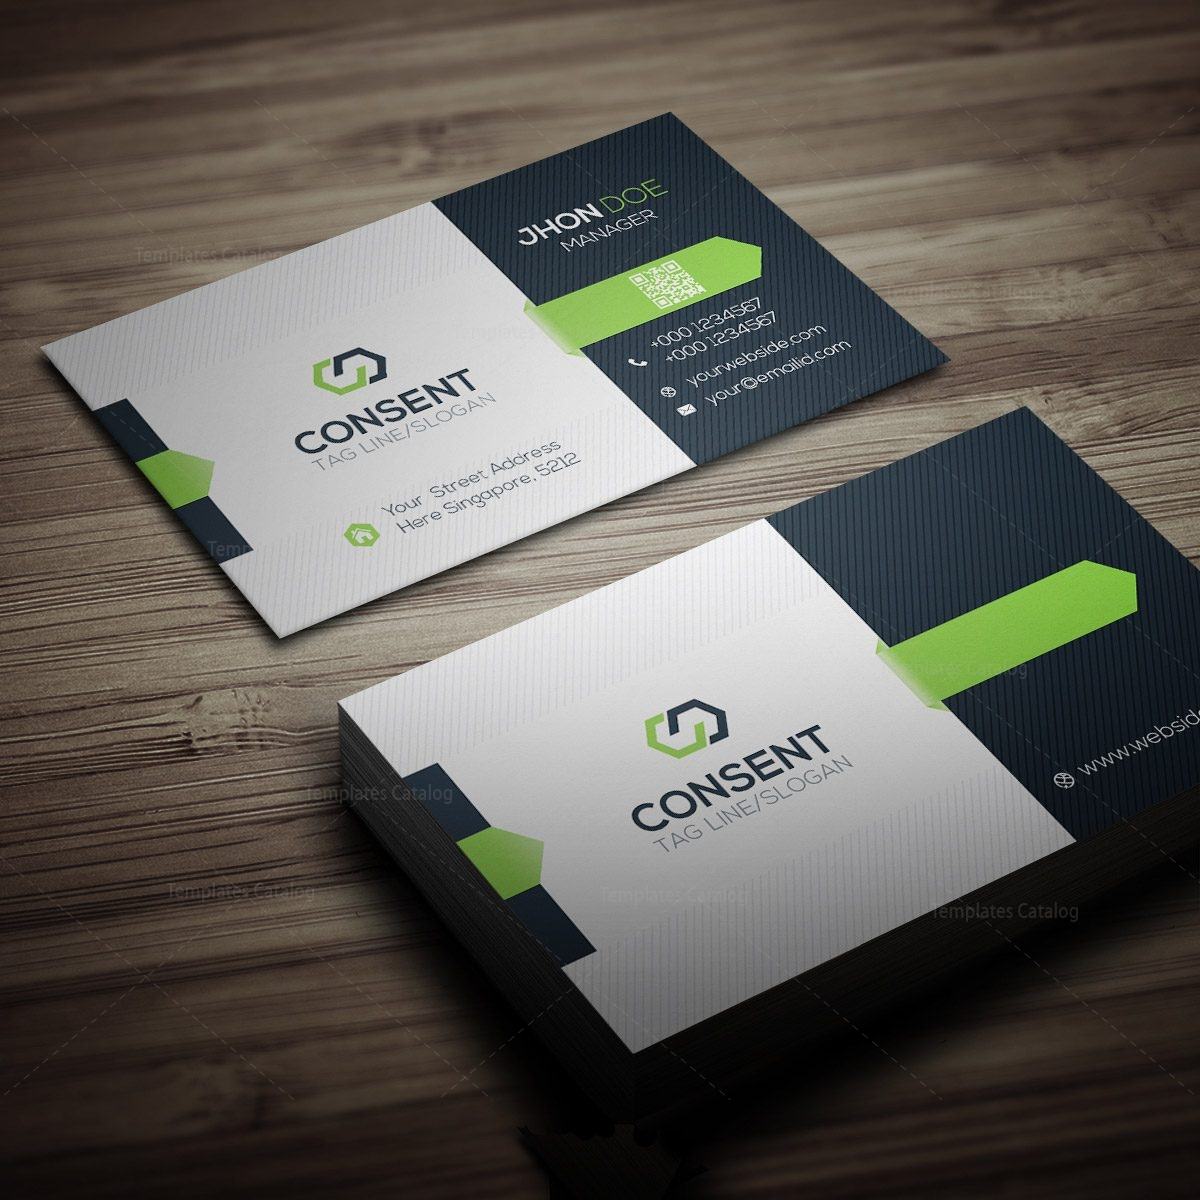 Consent business card template 000275 template catalog for Busness card template